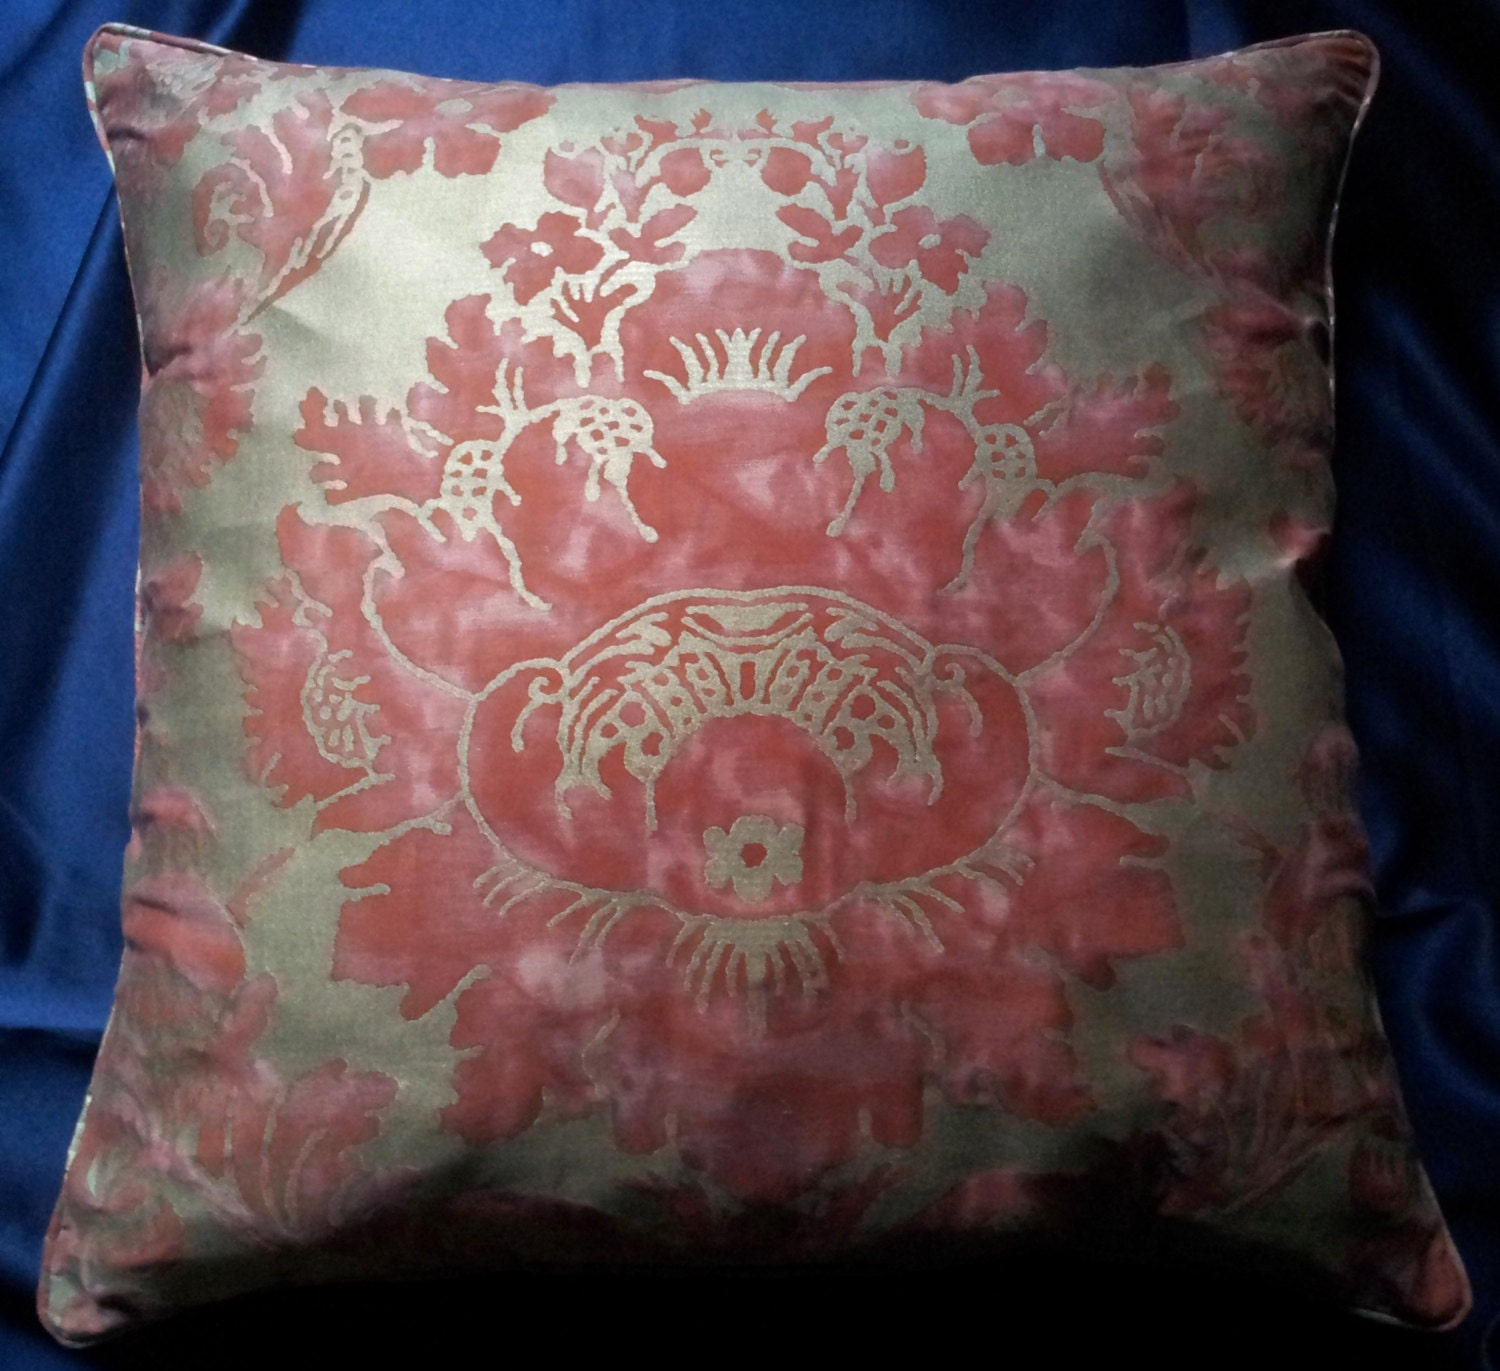 Throw Pillow Cover Fabric : 22 x 22 Fortuny Fabric Throw Pillow Cushion Cover